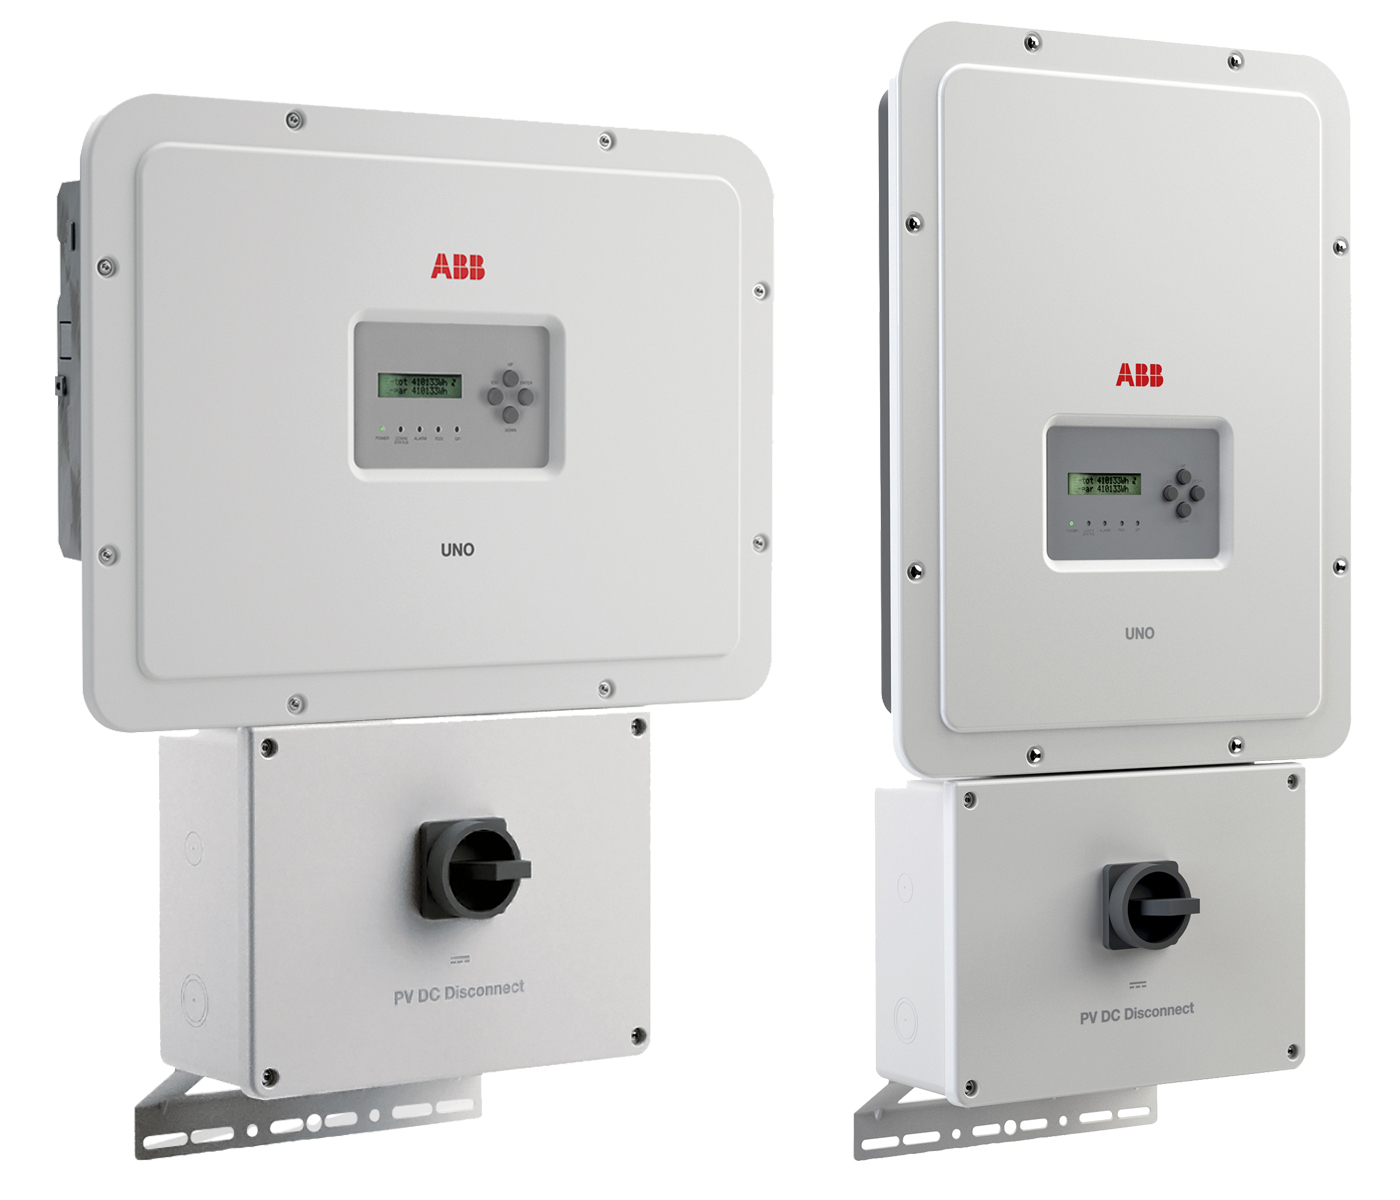 Residential Solar Inverter Series Available in Five Power Ratings From 3.3 to 6.0kW